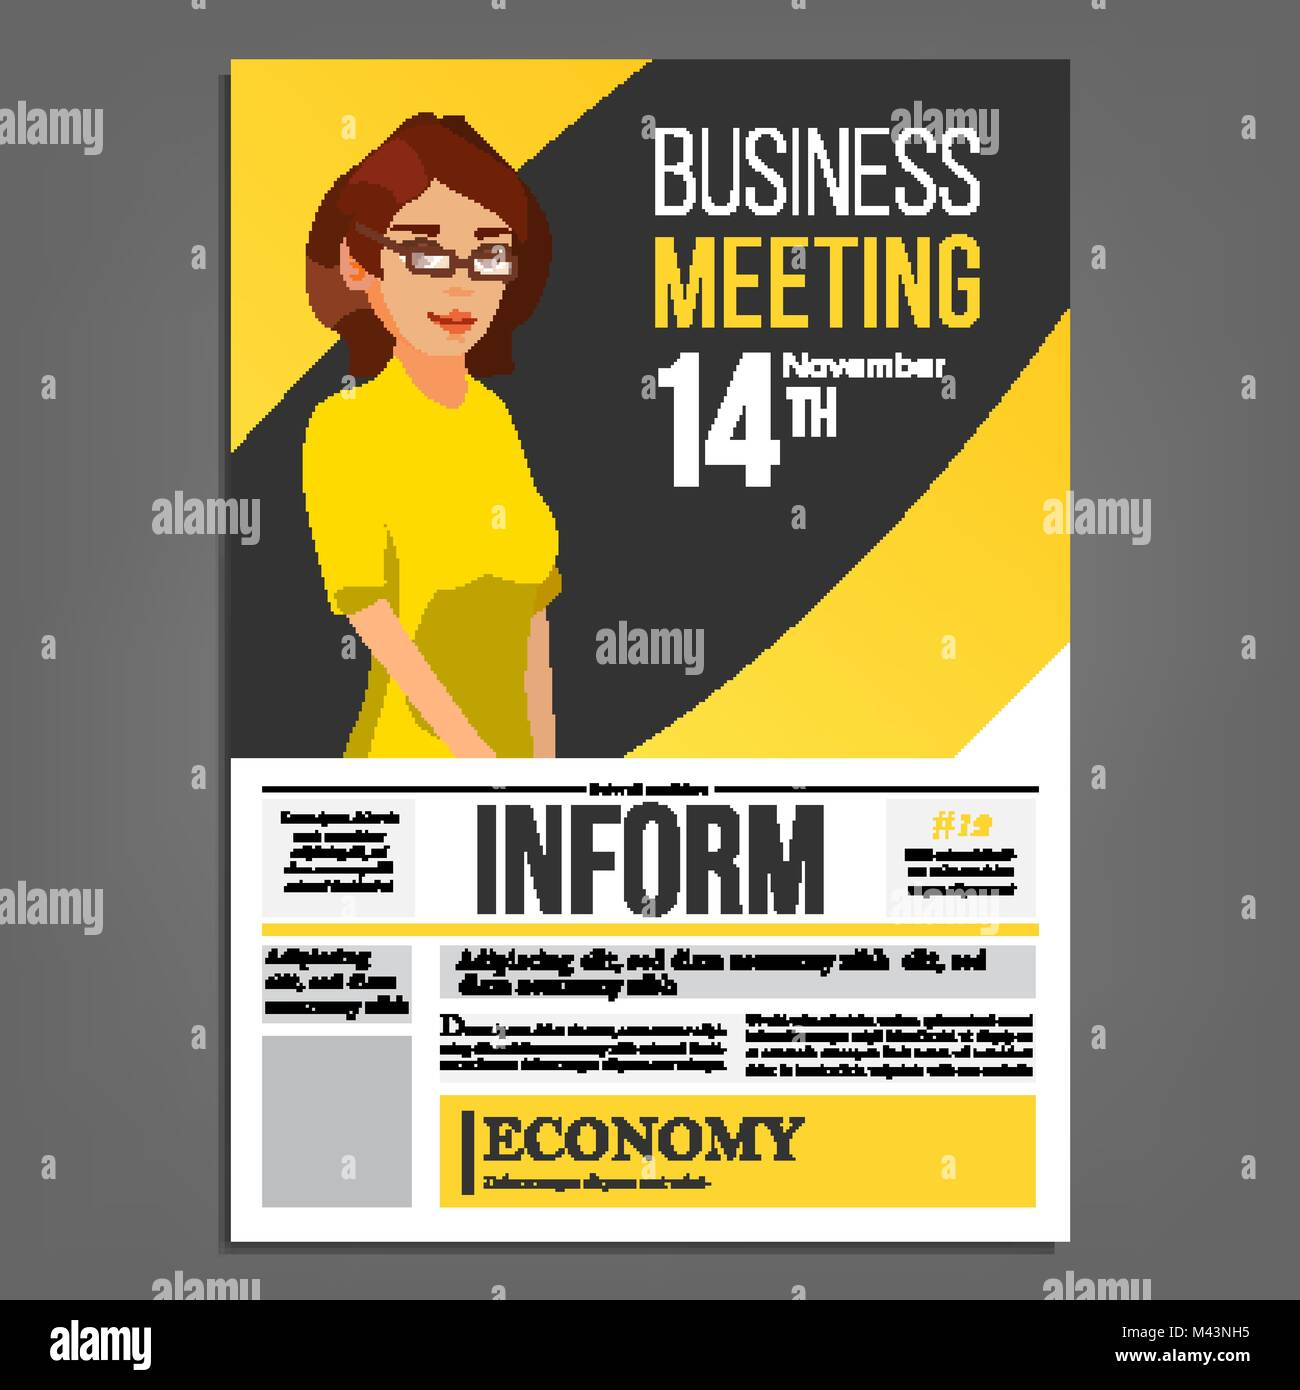 Business meeting poster vector business woman invitation and date business meeting poster vector business woman invitation and date conference template a4 size cover annual report flat cartoon illustration stopboris Image collections